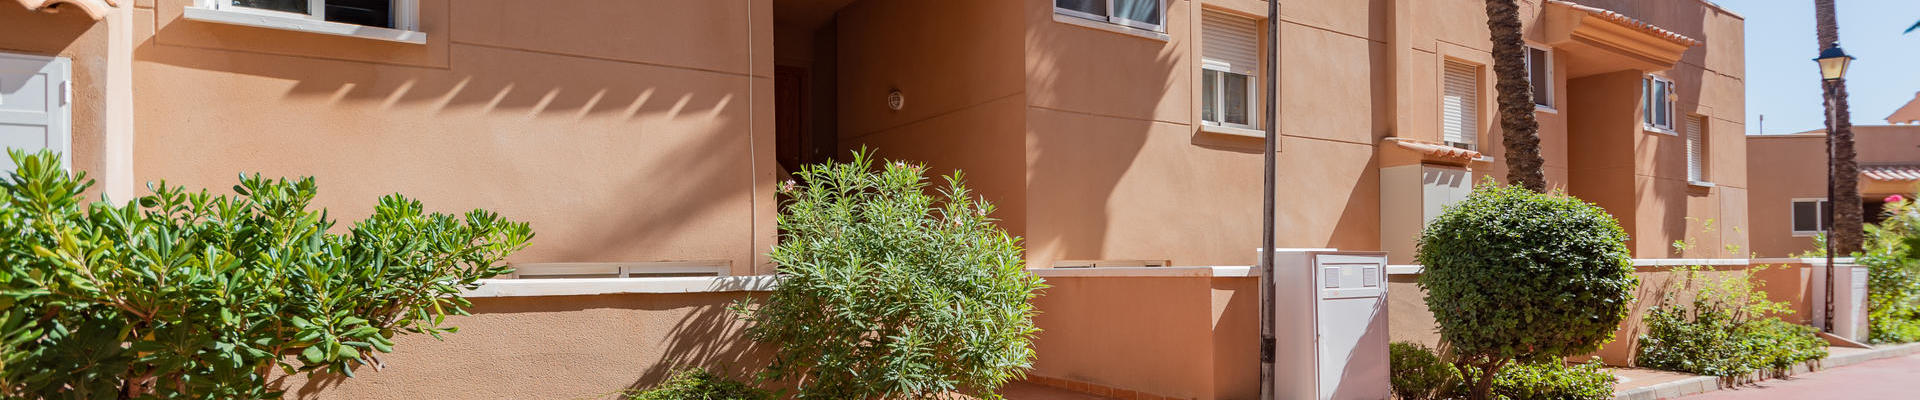 a1386: 2 Bedroom Apartment for Sale